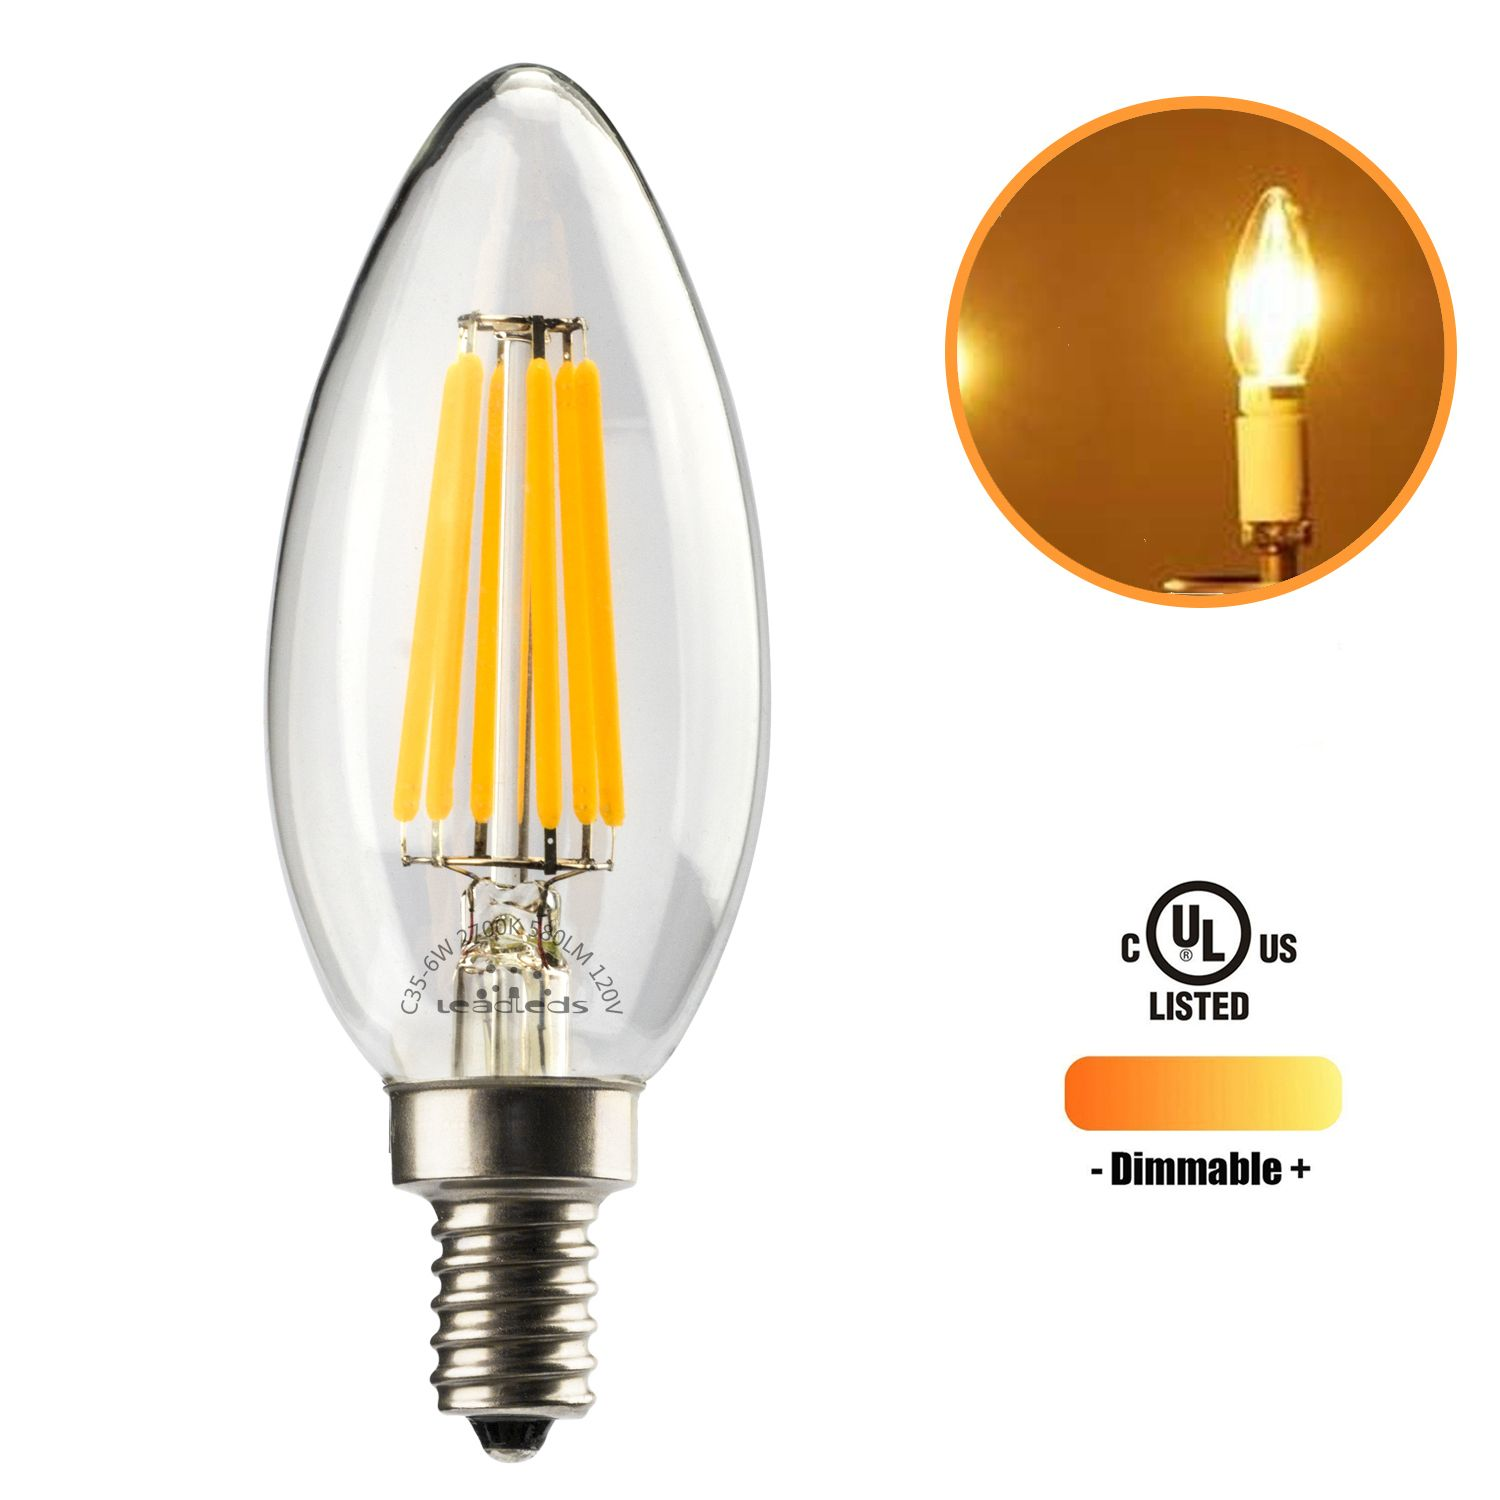 christmas day is around the cornor 6w candelabra light bulb better for decoration use